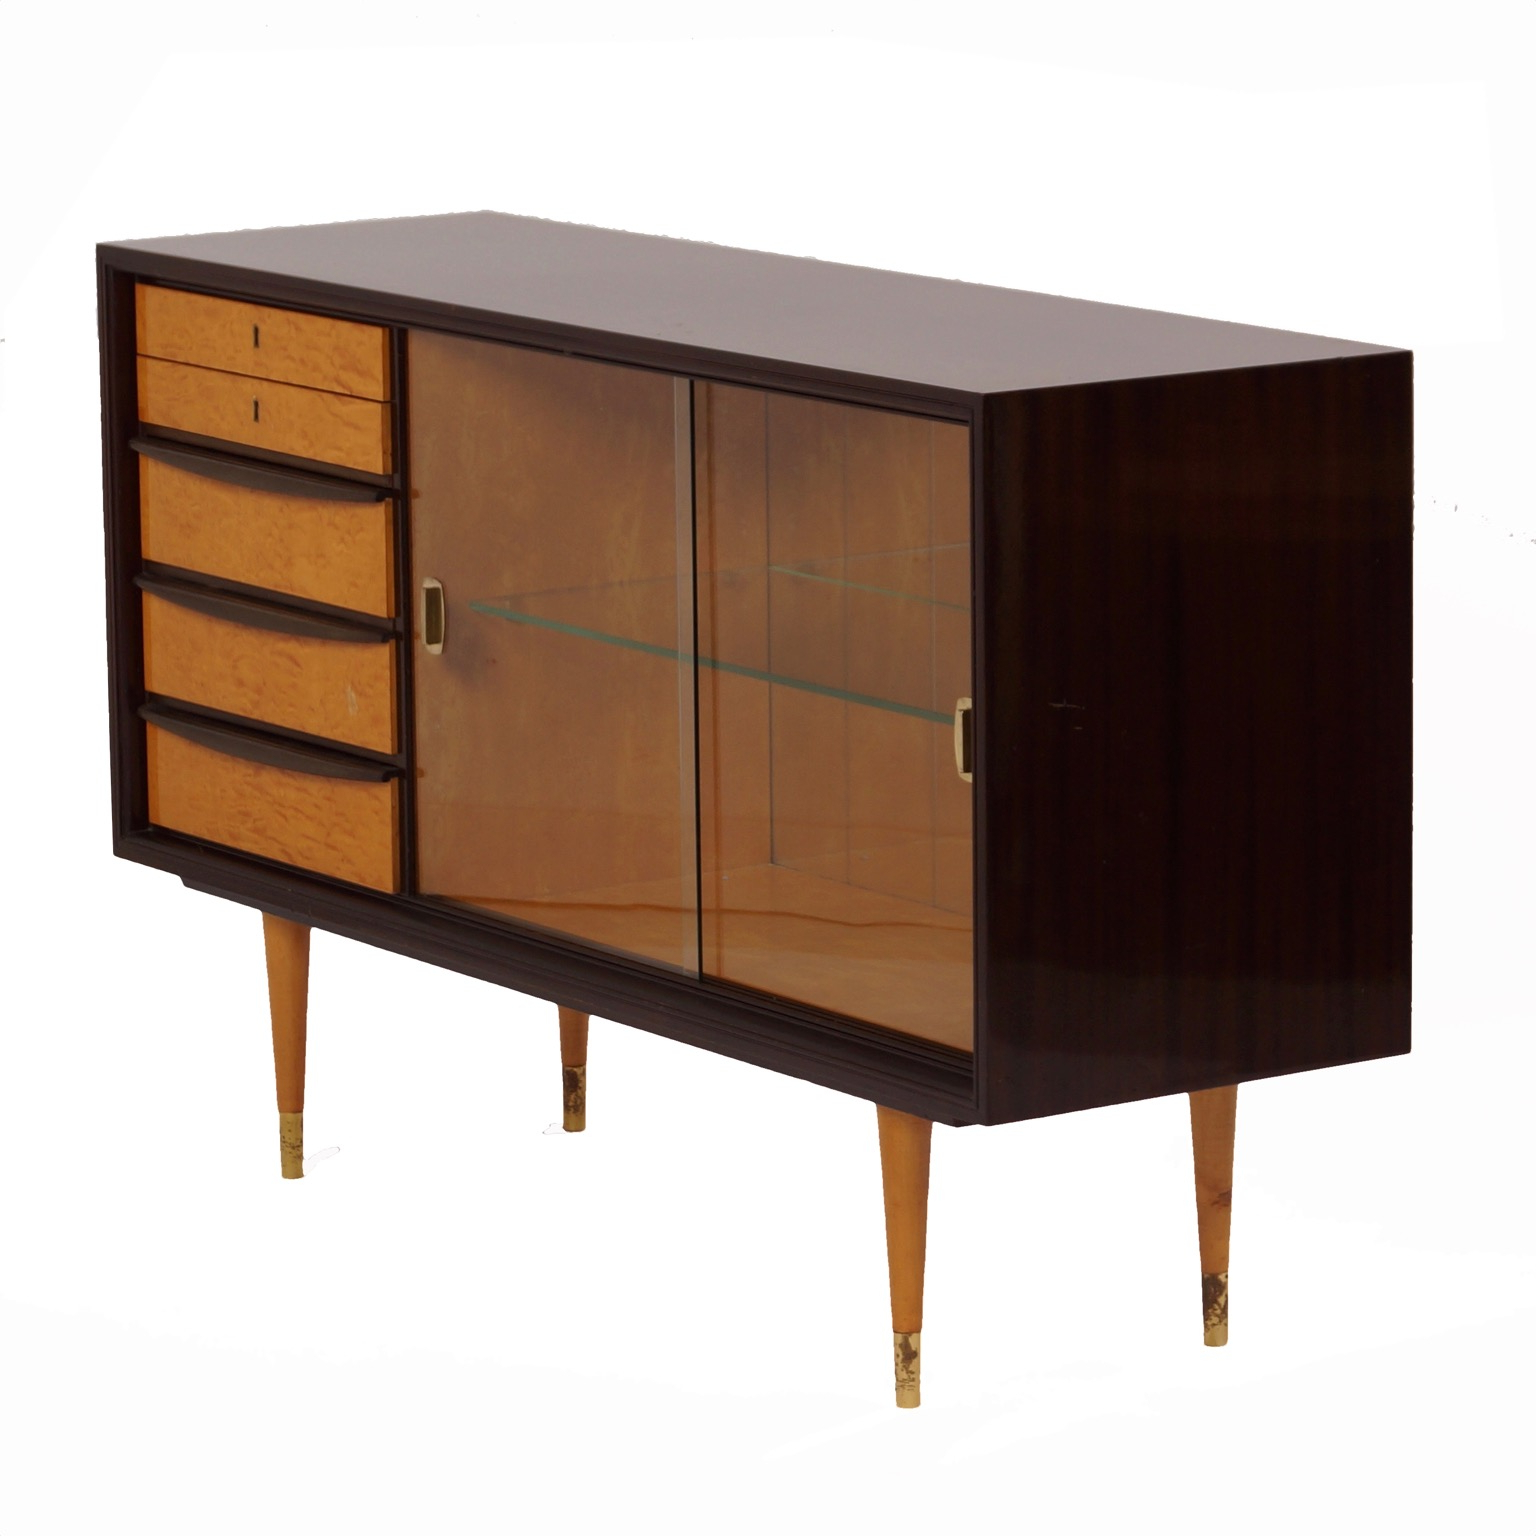 Aged Brass Sideboards Throughout 2019 Mahogany Sideboard With Showcase And Brass Details, 1960S – Vintage (View 5 of 20)